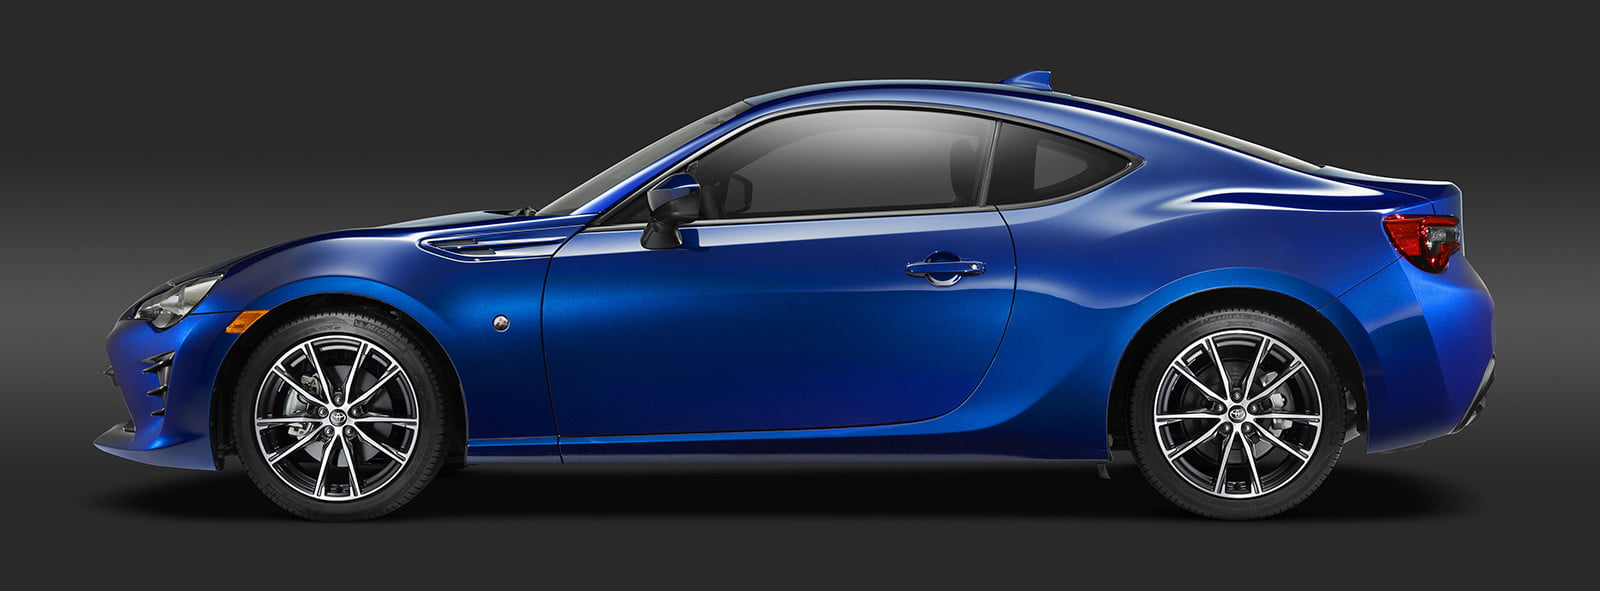 toyota and subaru reboot 86 sports coupe for second generation 2018  25